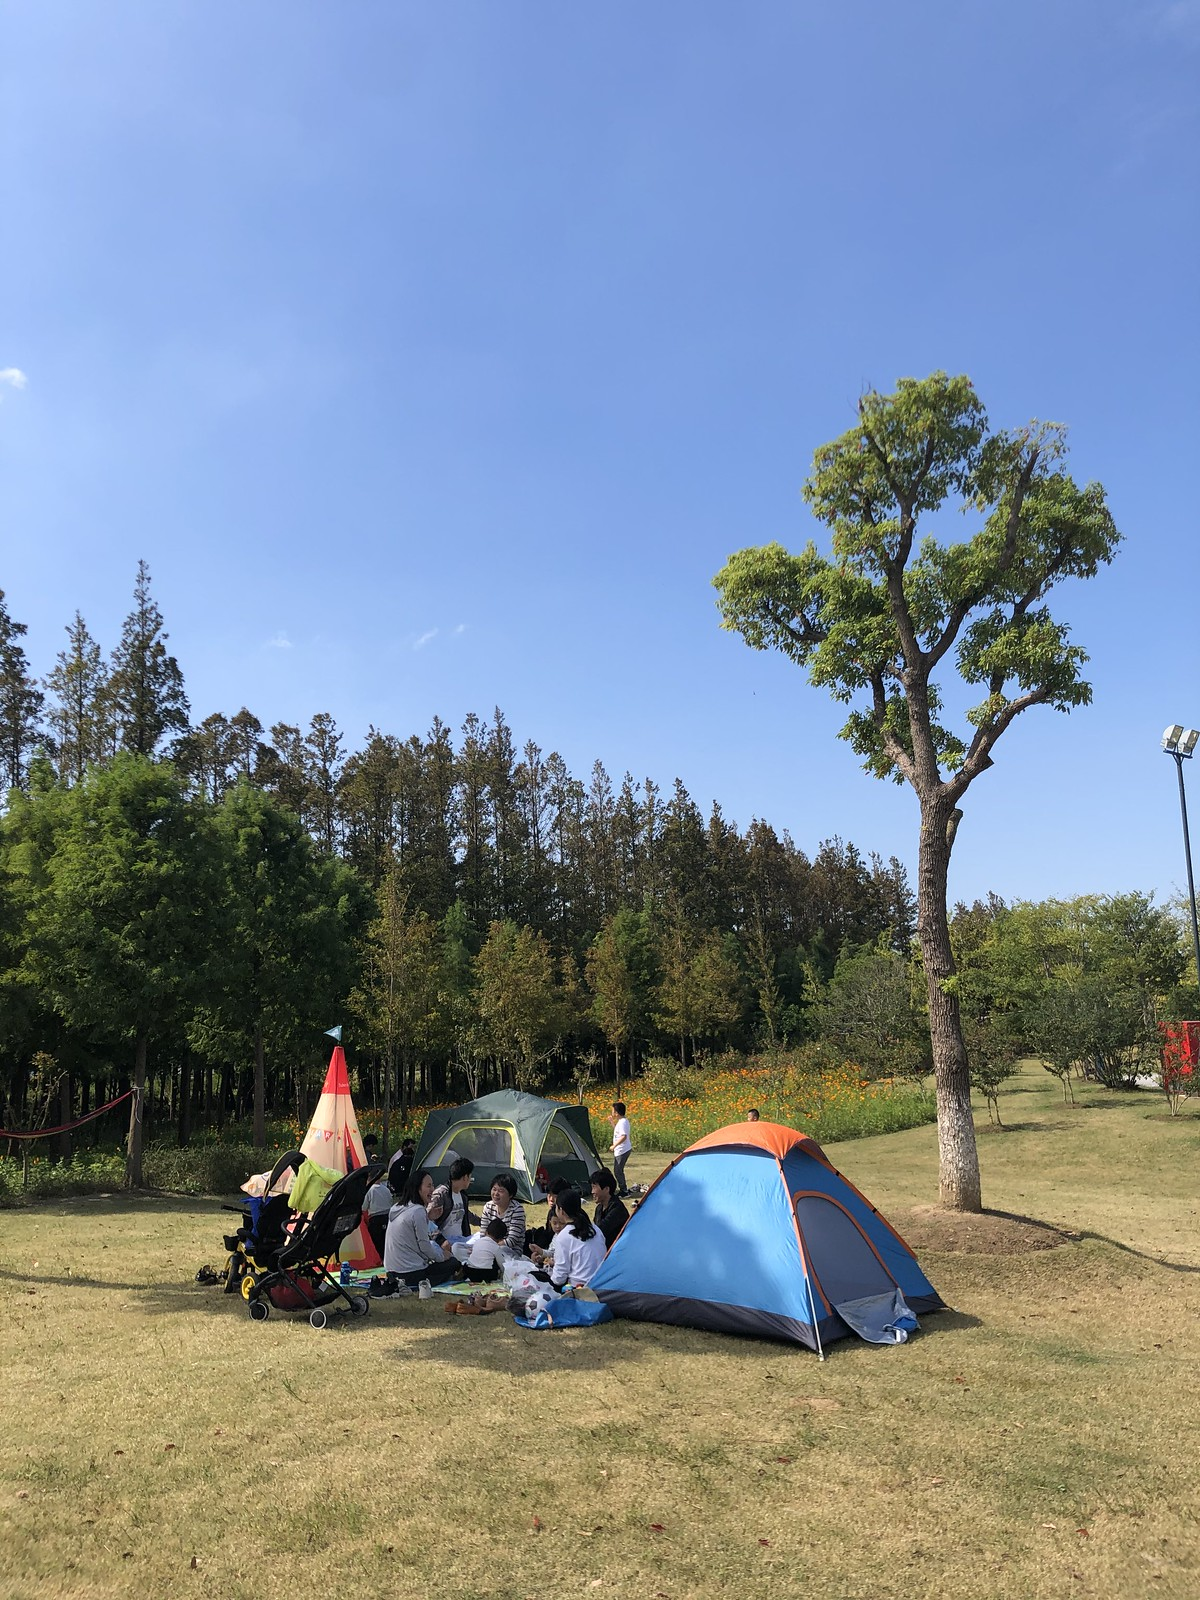 Shanghai Morning Glamping